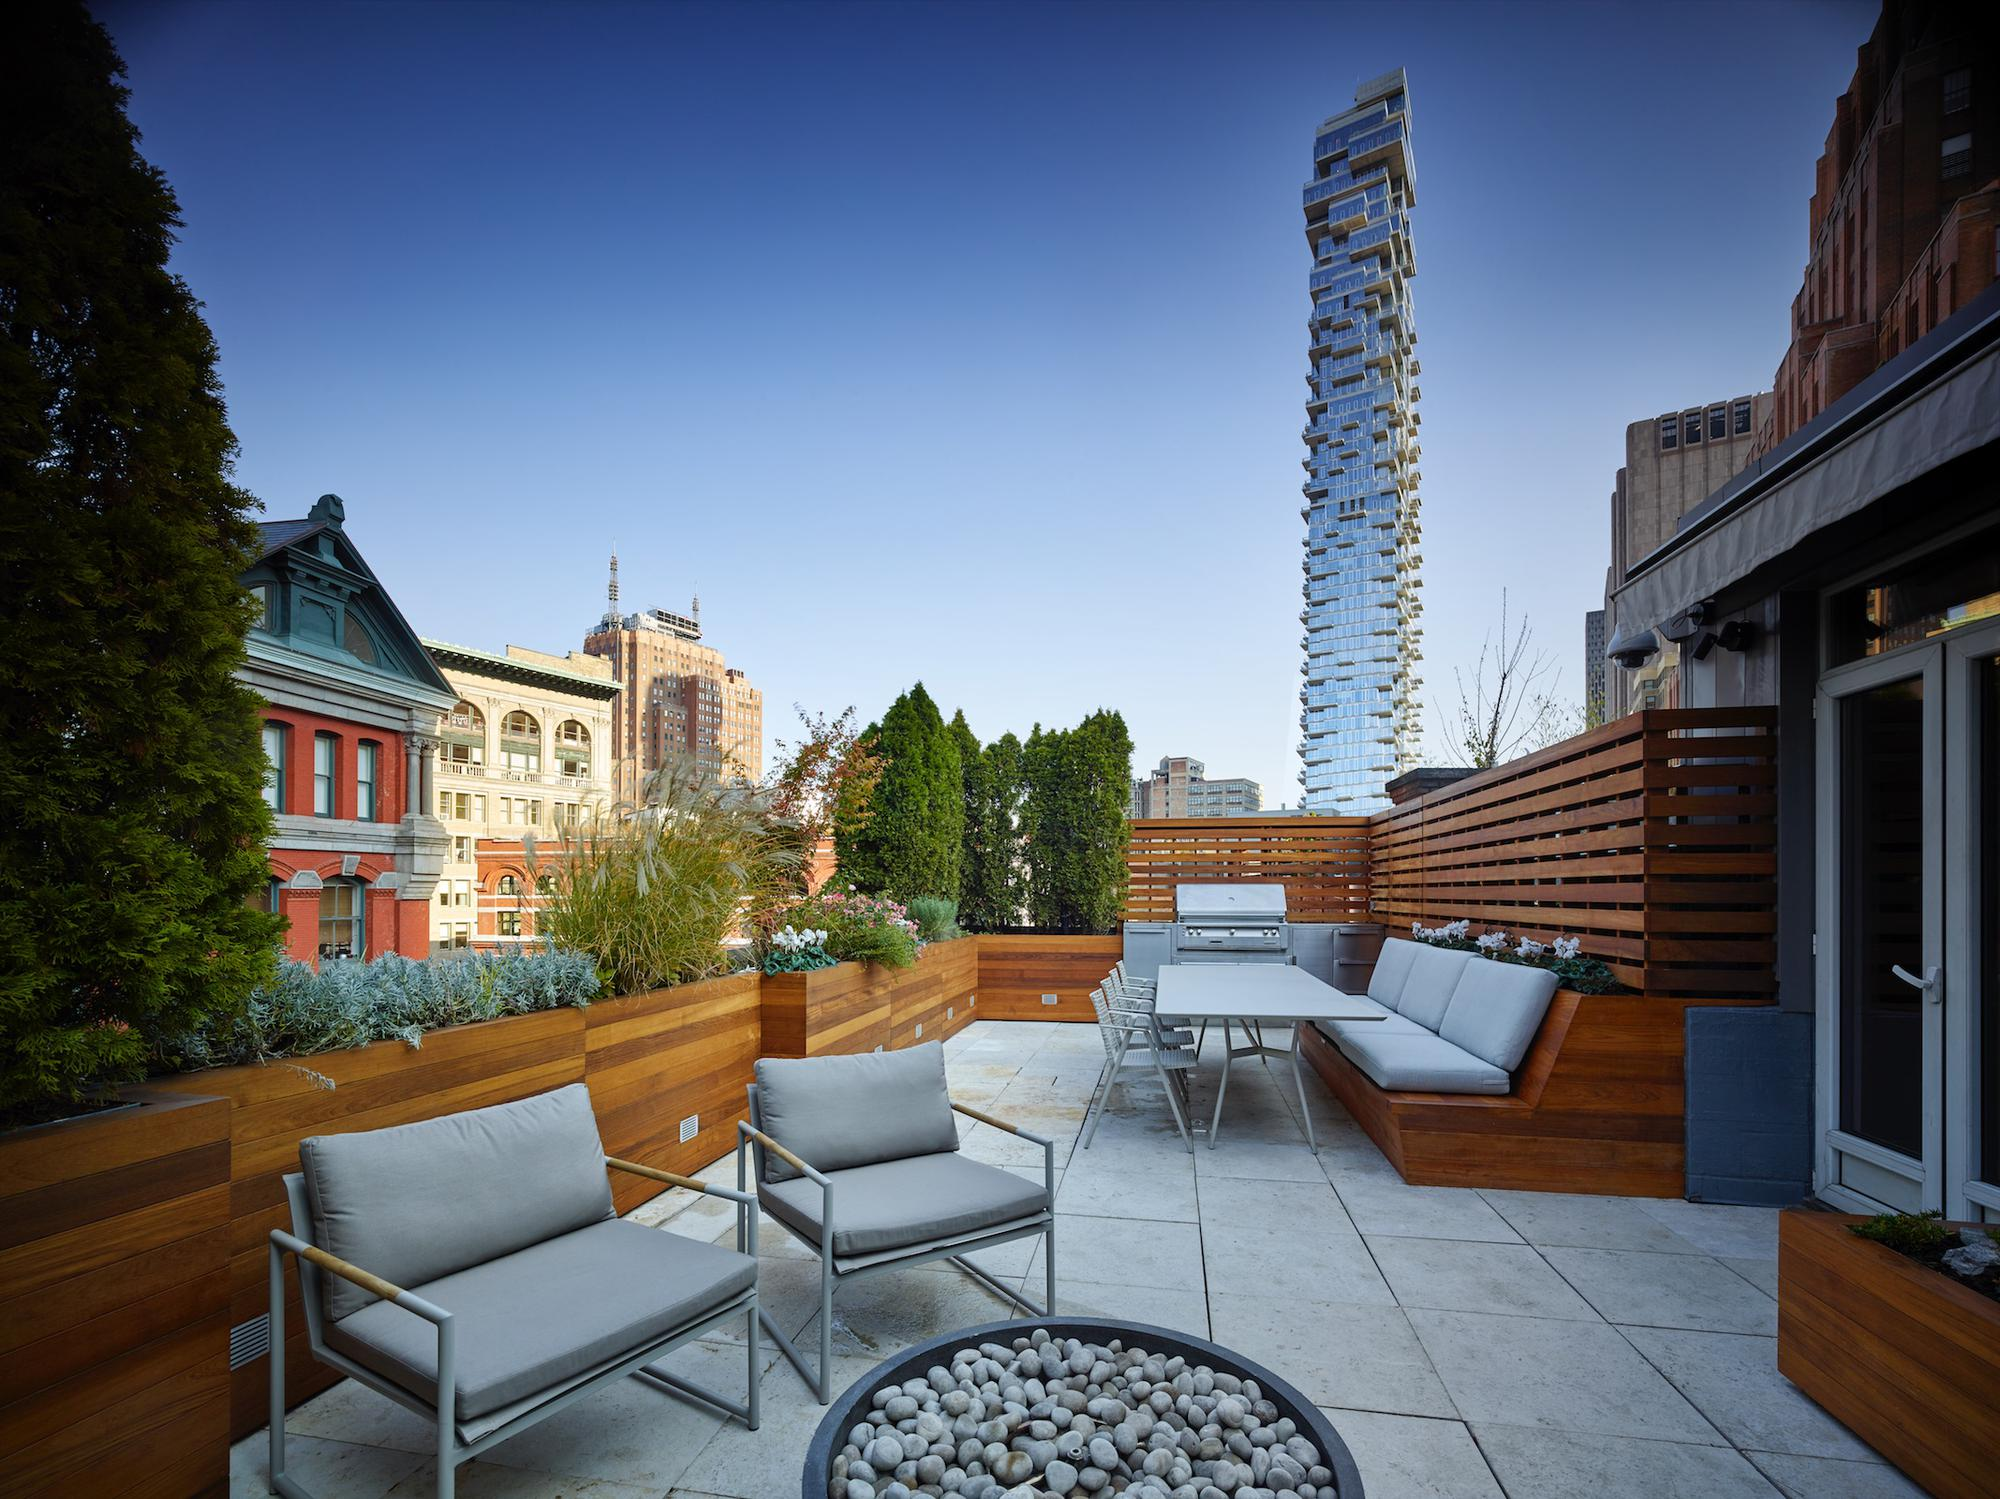 TRIBECA ROOFSCAPE